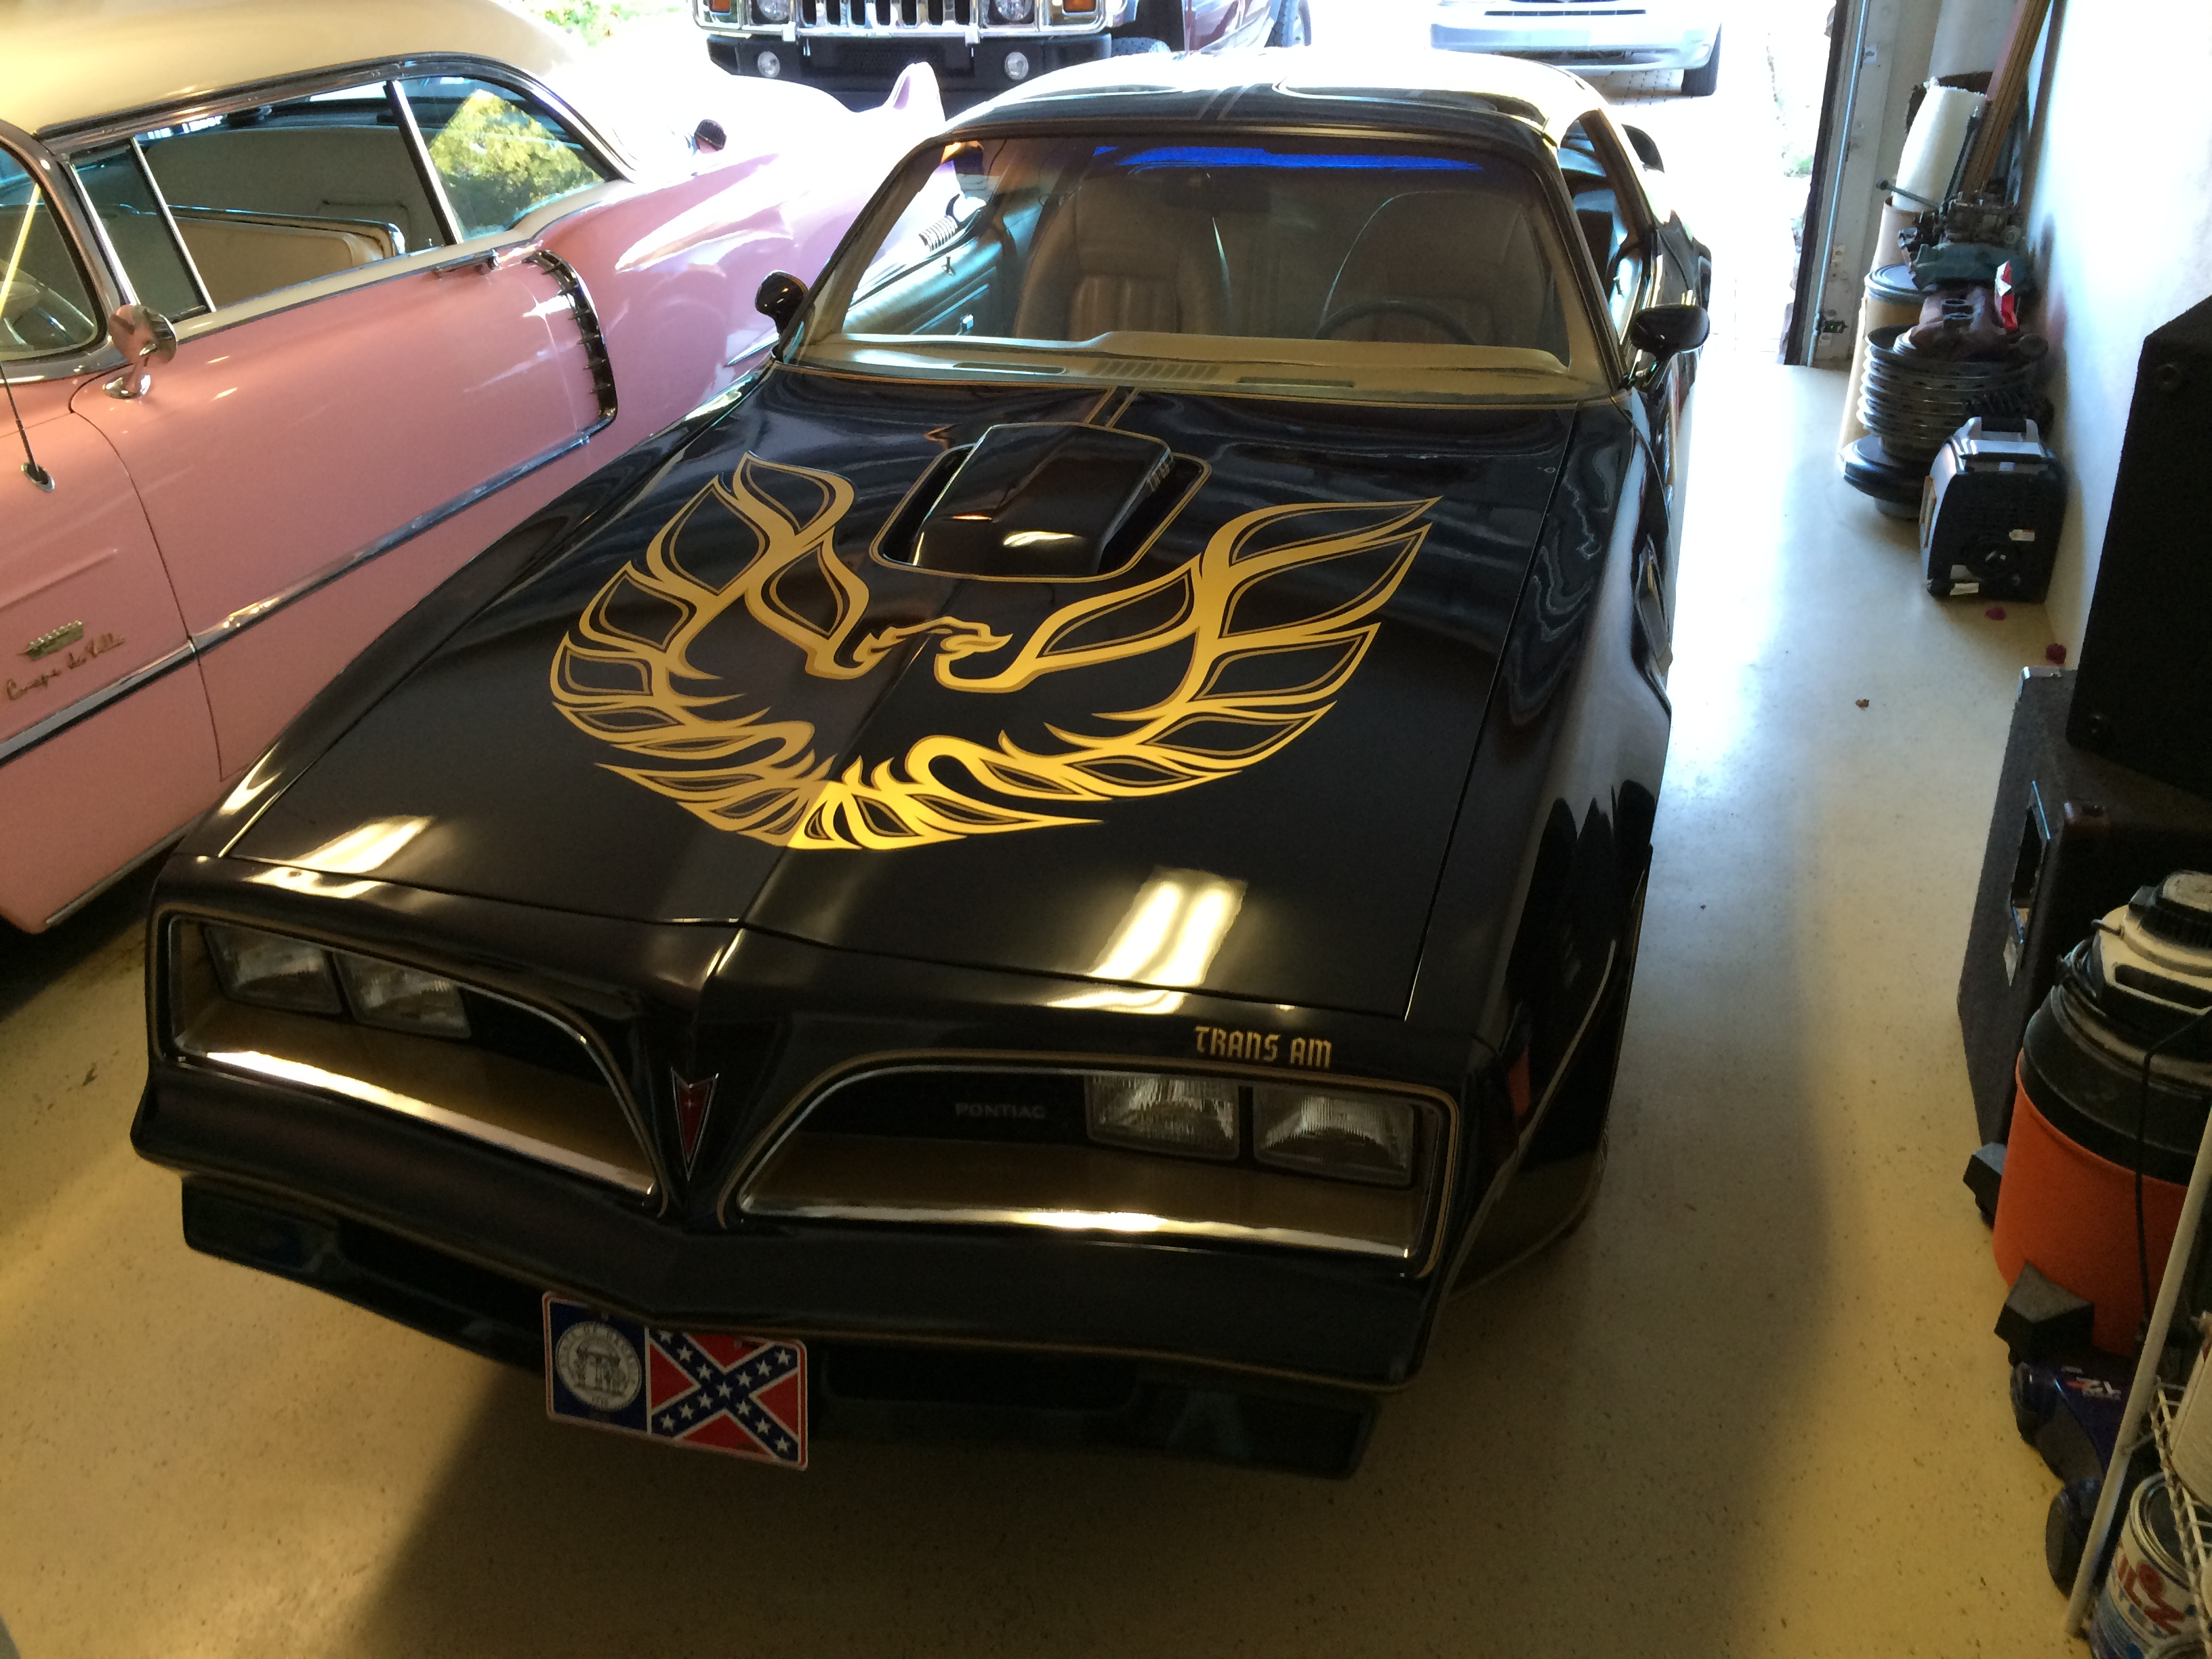 Joe's 1977 Pontiac Trans Am Special Edition Smokey and the Bandit Tribute Car